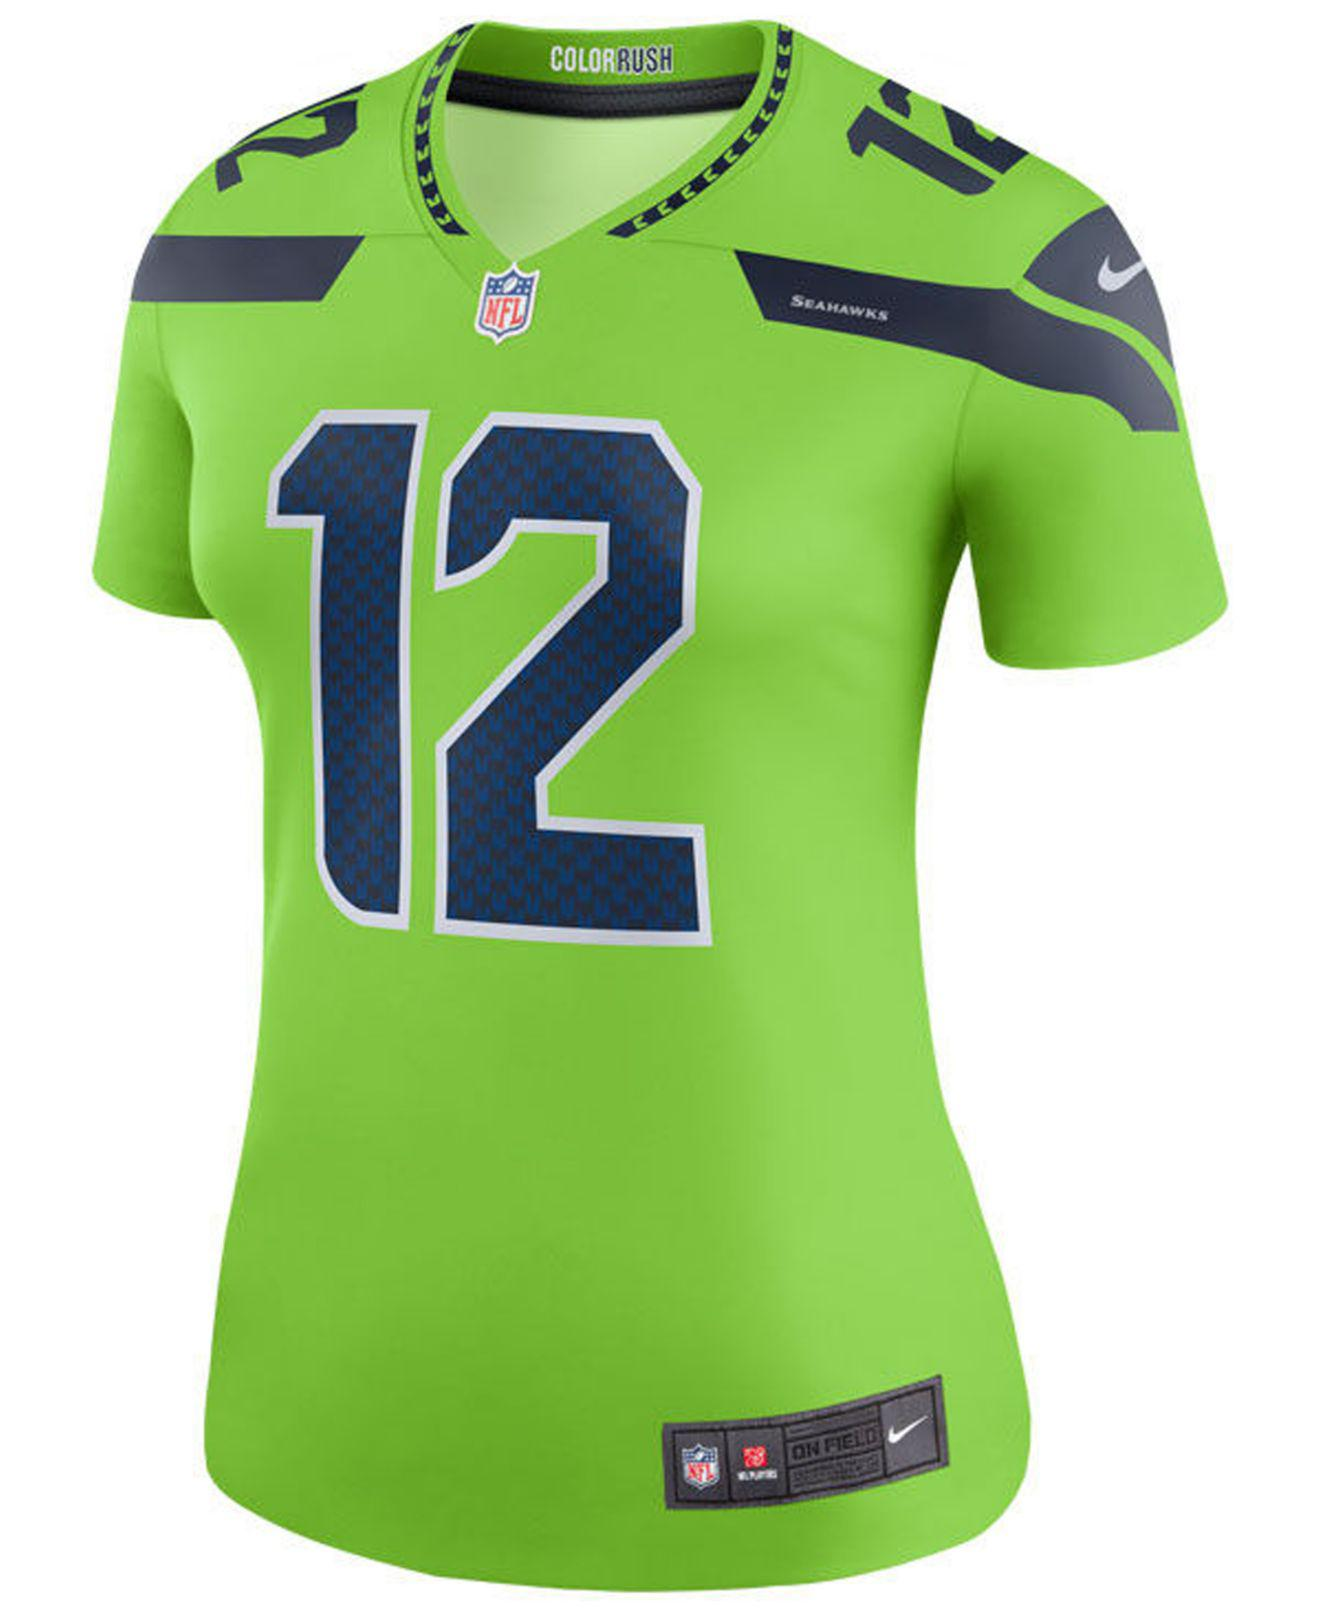 5e4d4a13a97 Nike Seattle Seahawks Color Rush Legend Jersey in Green - Save 47% - Lyst